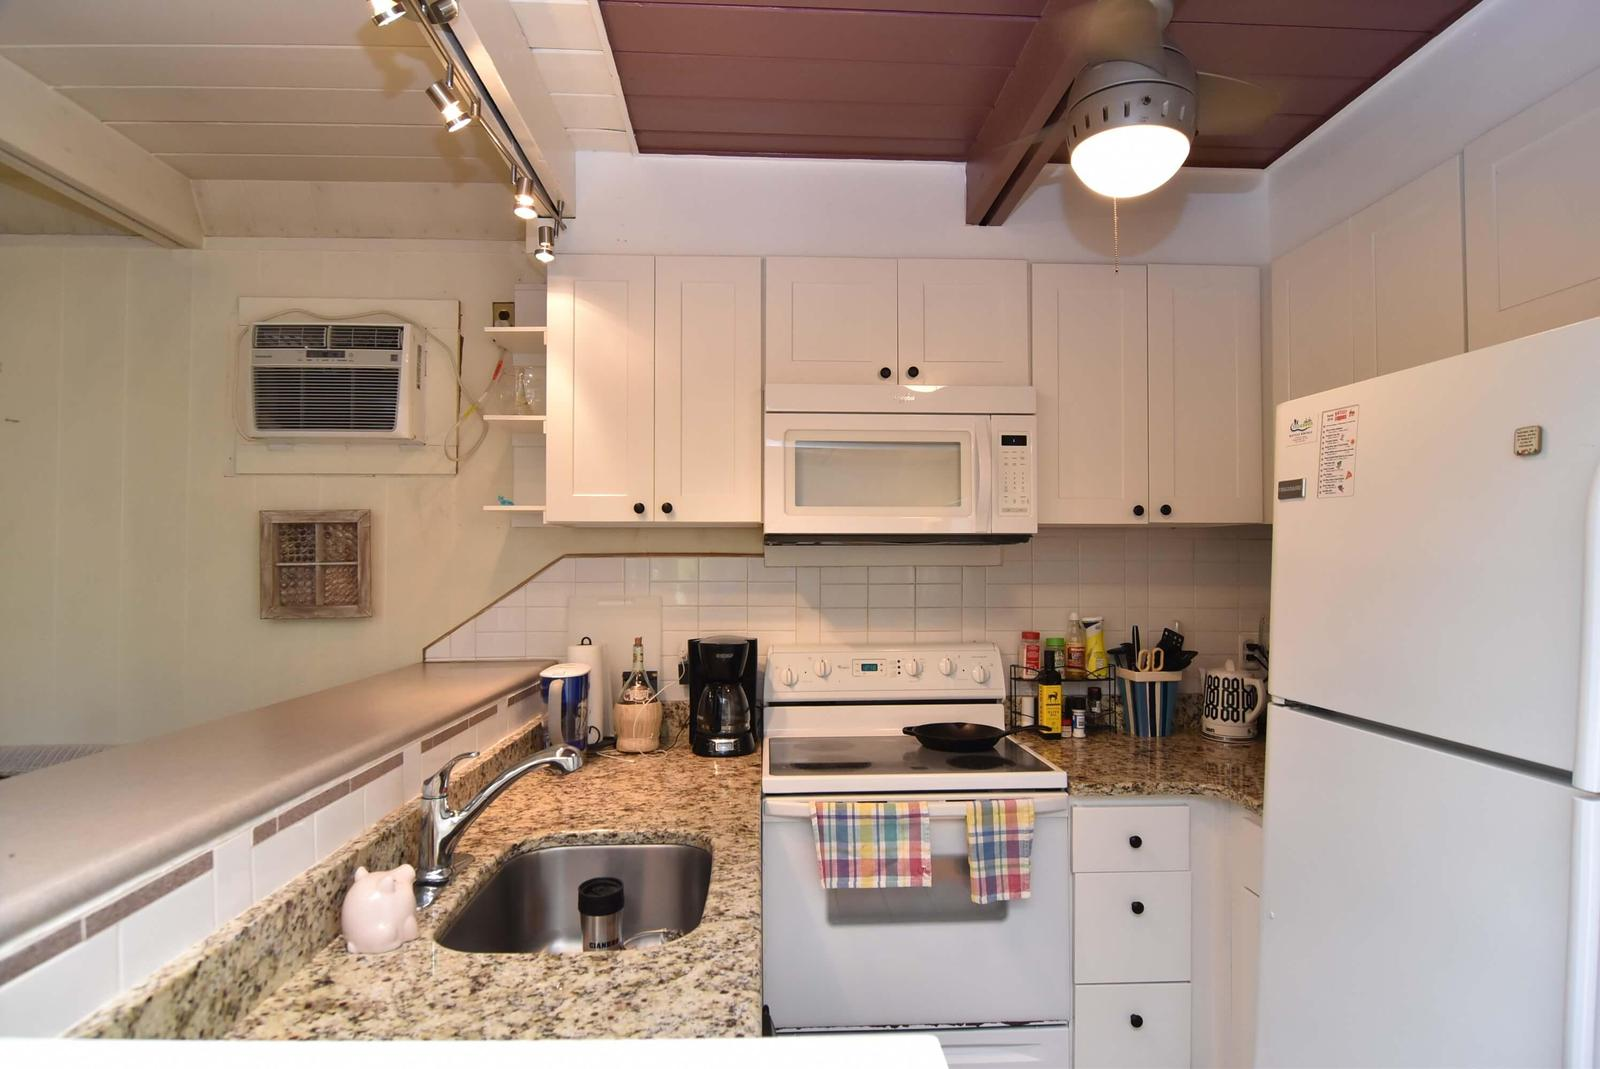 Full kitchen with granite countertops open to dining and sitting rooms